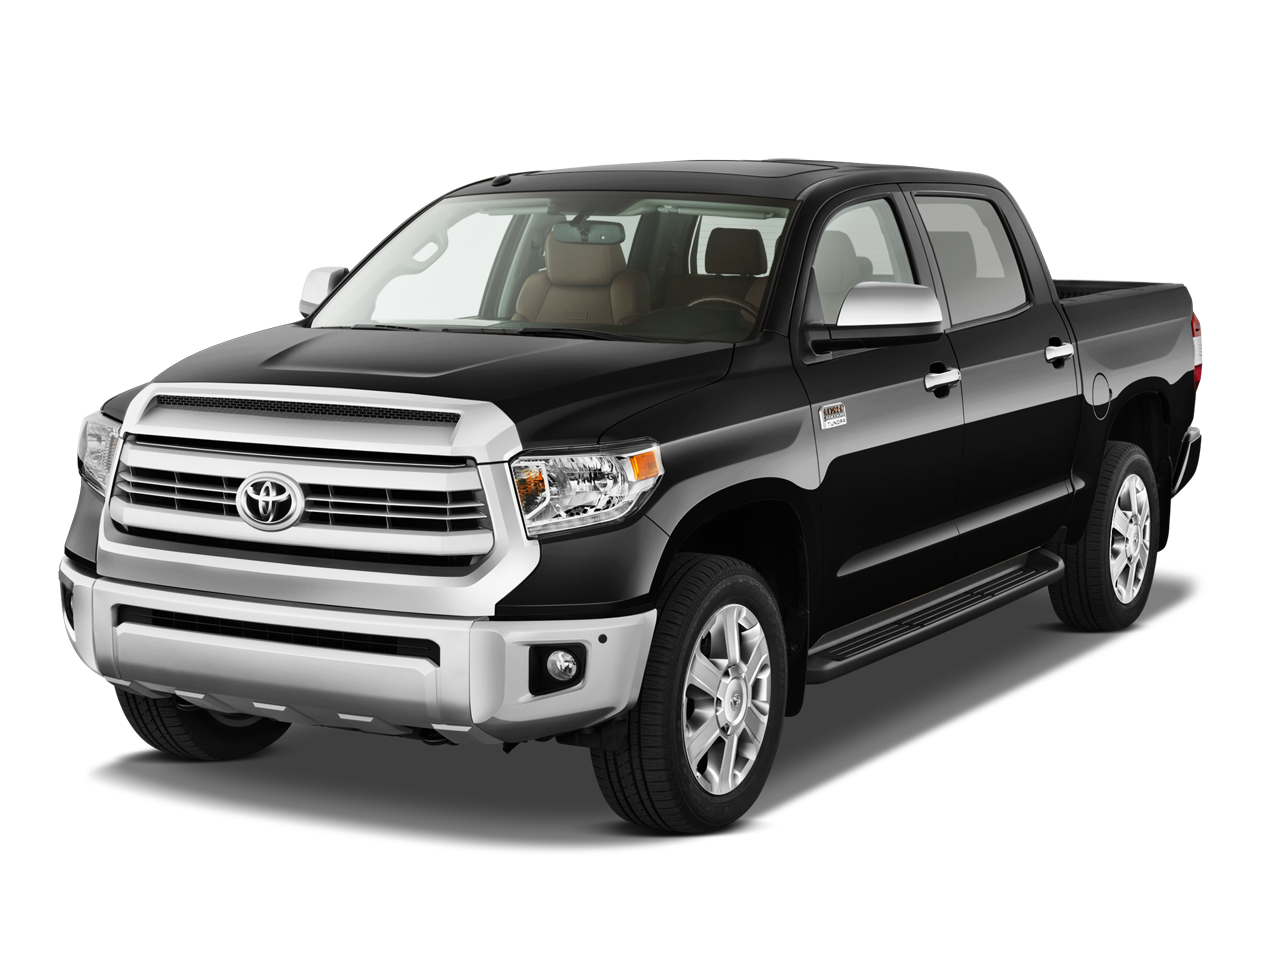 new 2017 toyota tundra 1794 5 7l v8 w ffv crew cab near oak lawn il oak lawn toyota. Black Bedroom Furniture Sets. Home Design Ideas